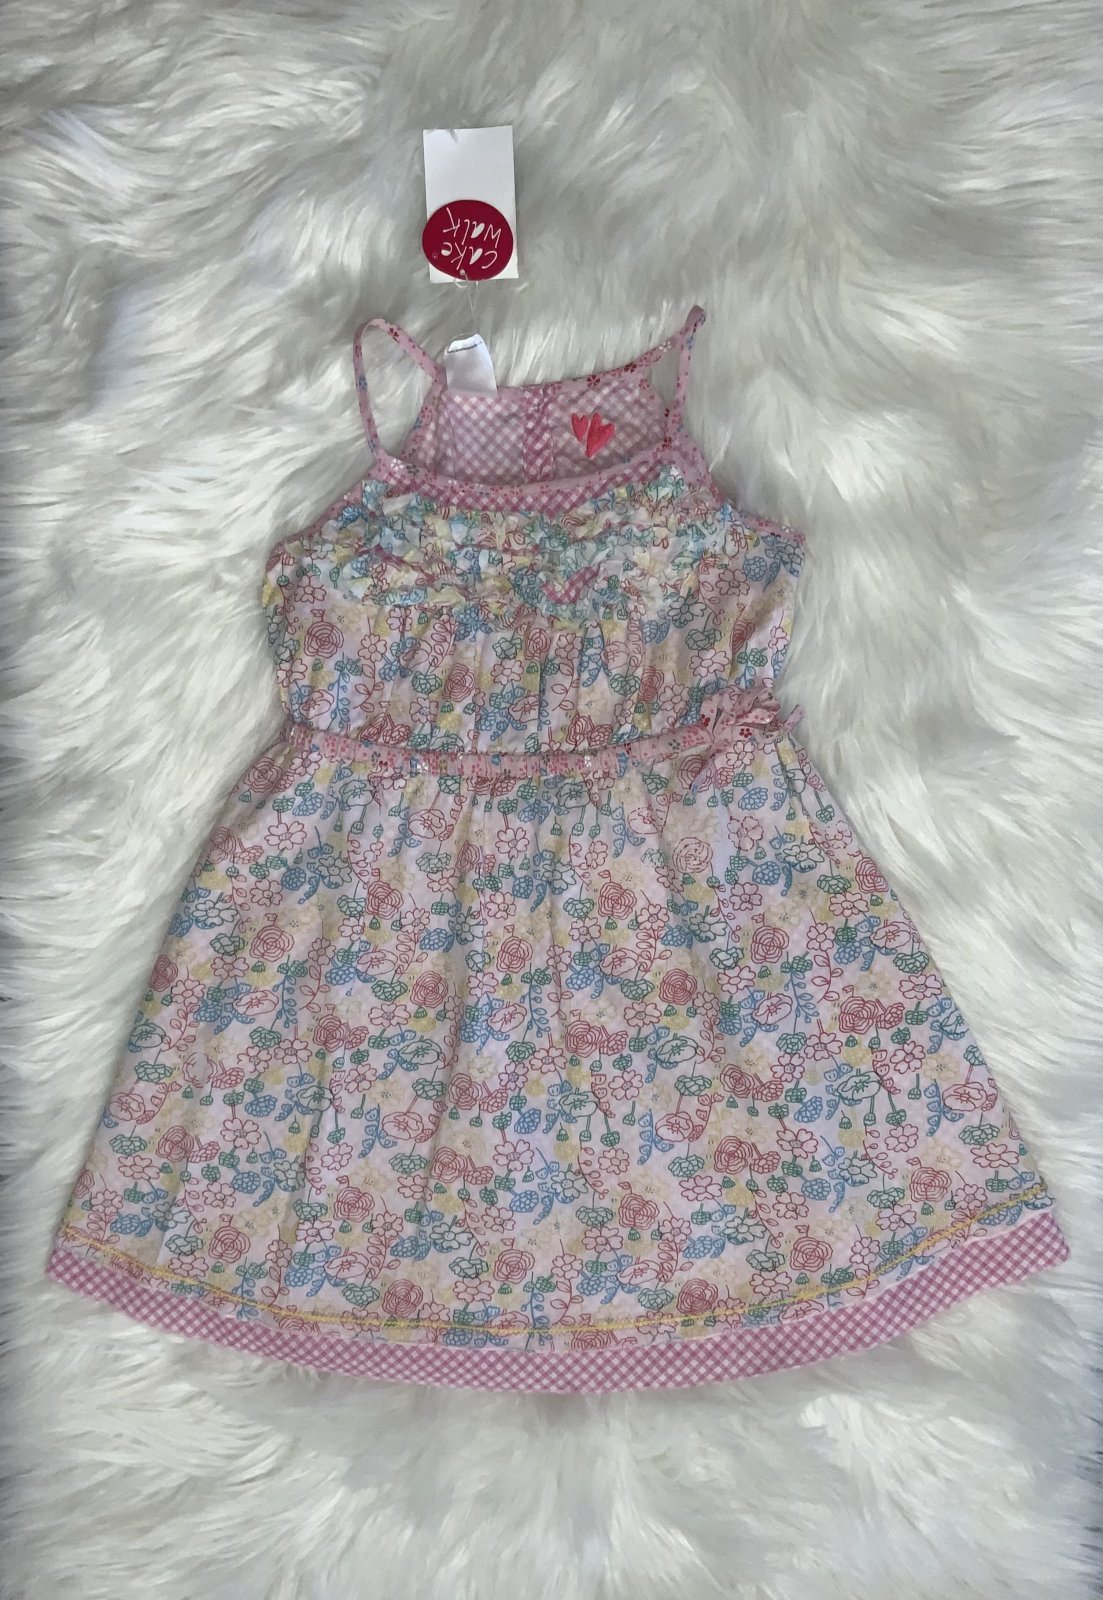 CAKEWALK DRESS NS NWT FLORAL SIZE 6